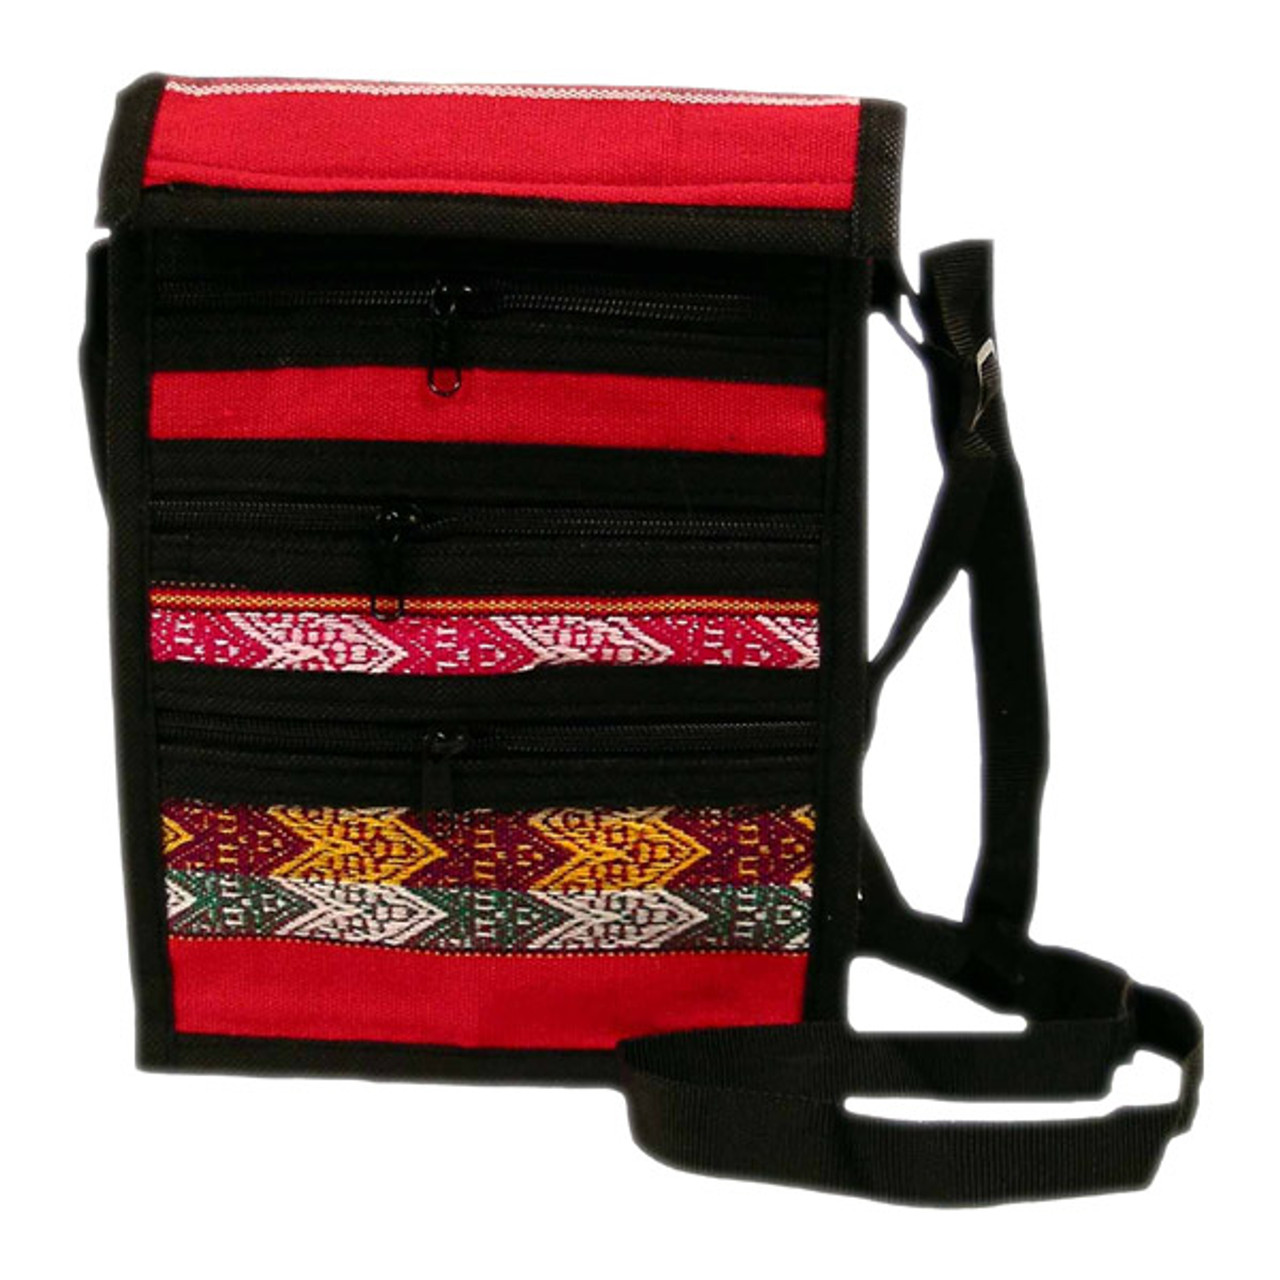 sturdy Andean purse//bag leather LAST ONE zippered and comes in red Peruvian